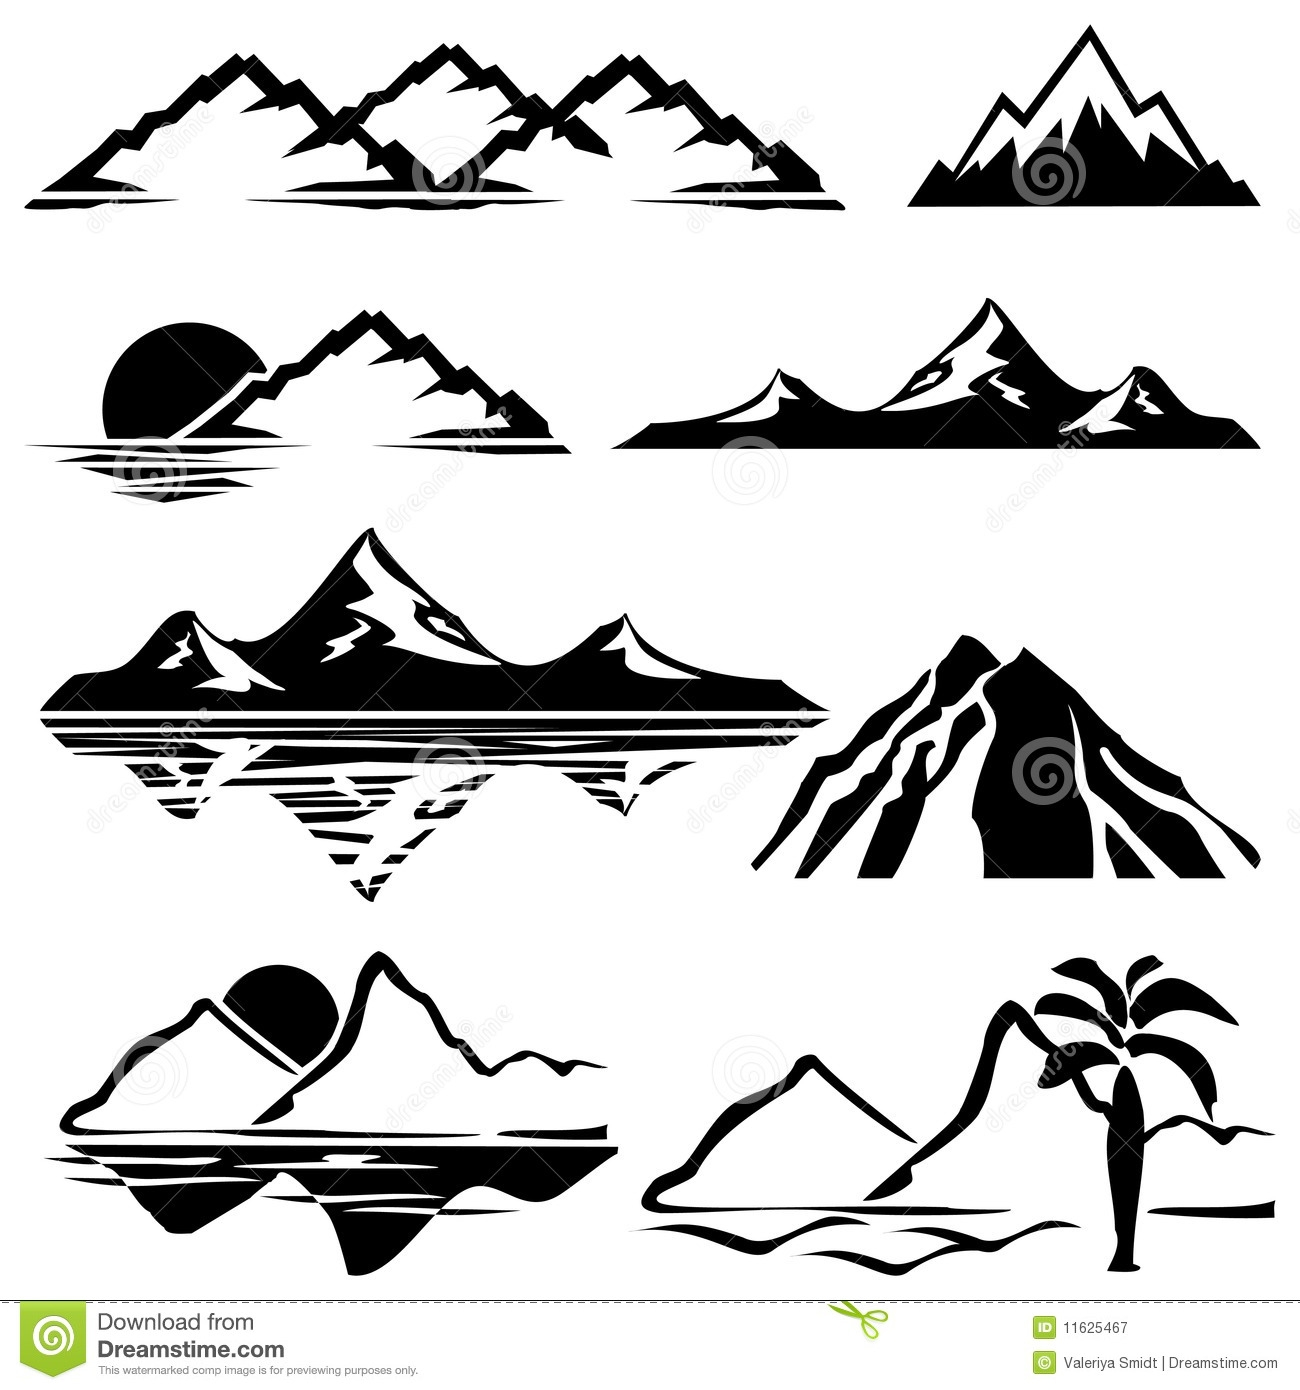 Smoky Mountains clipart #3, Download drawings